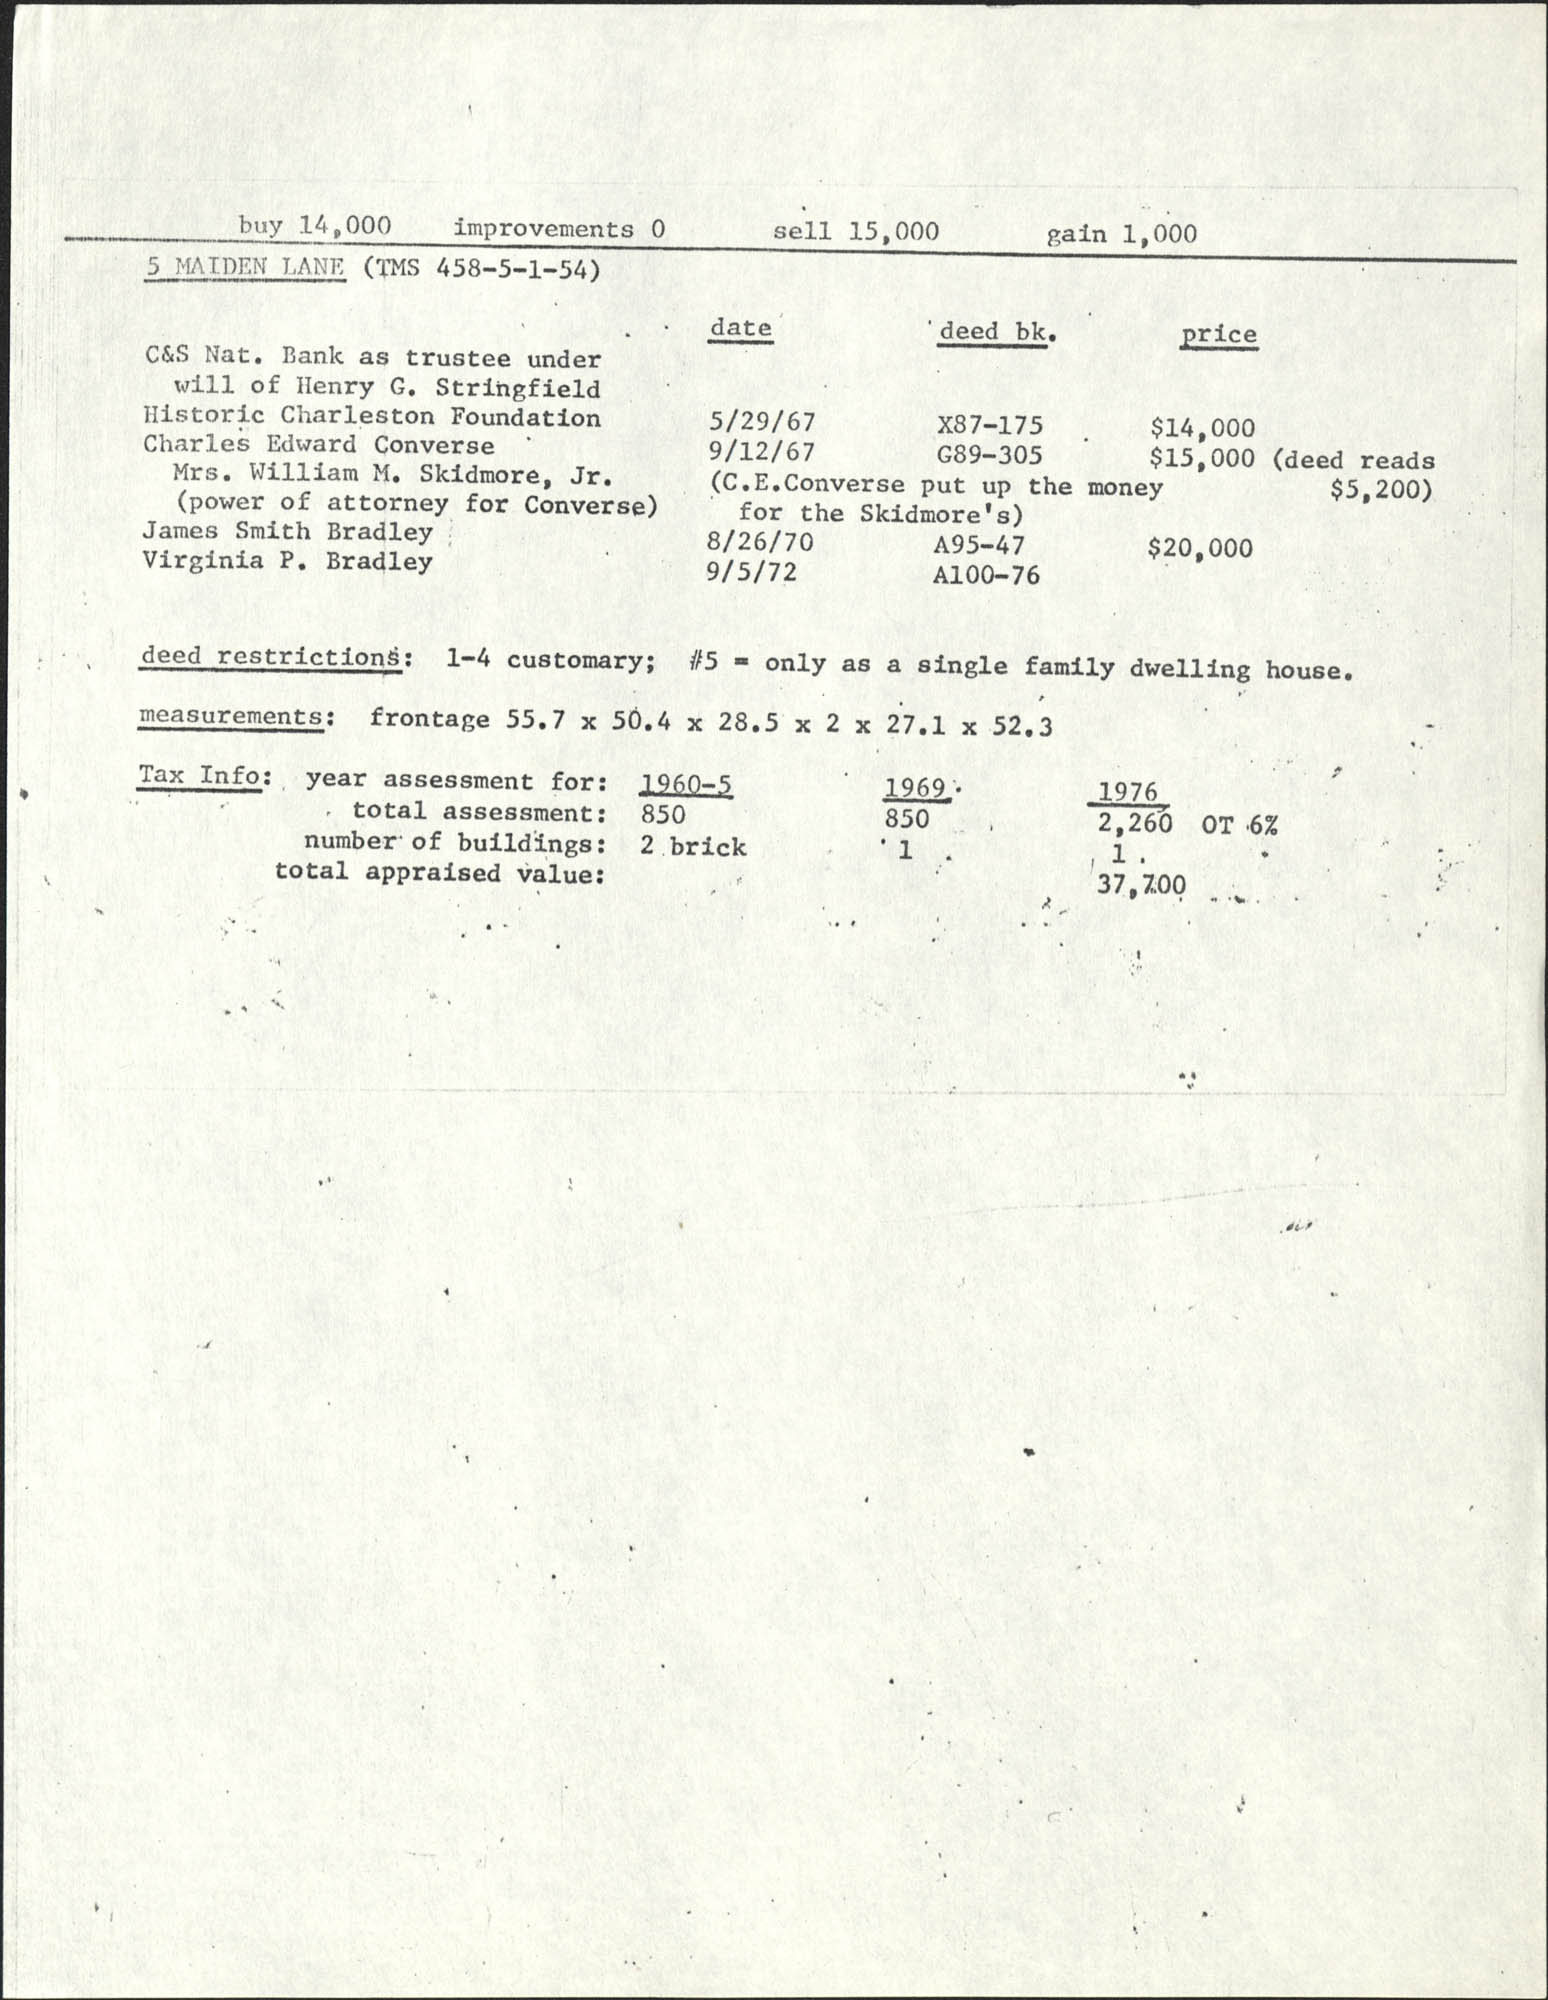 Deed records for 5 Maiden Lane